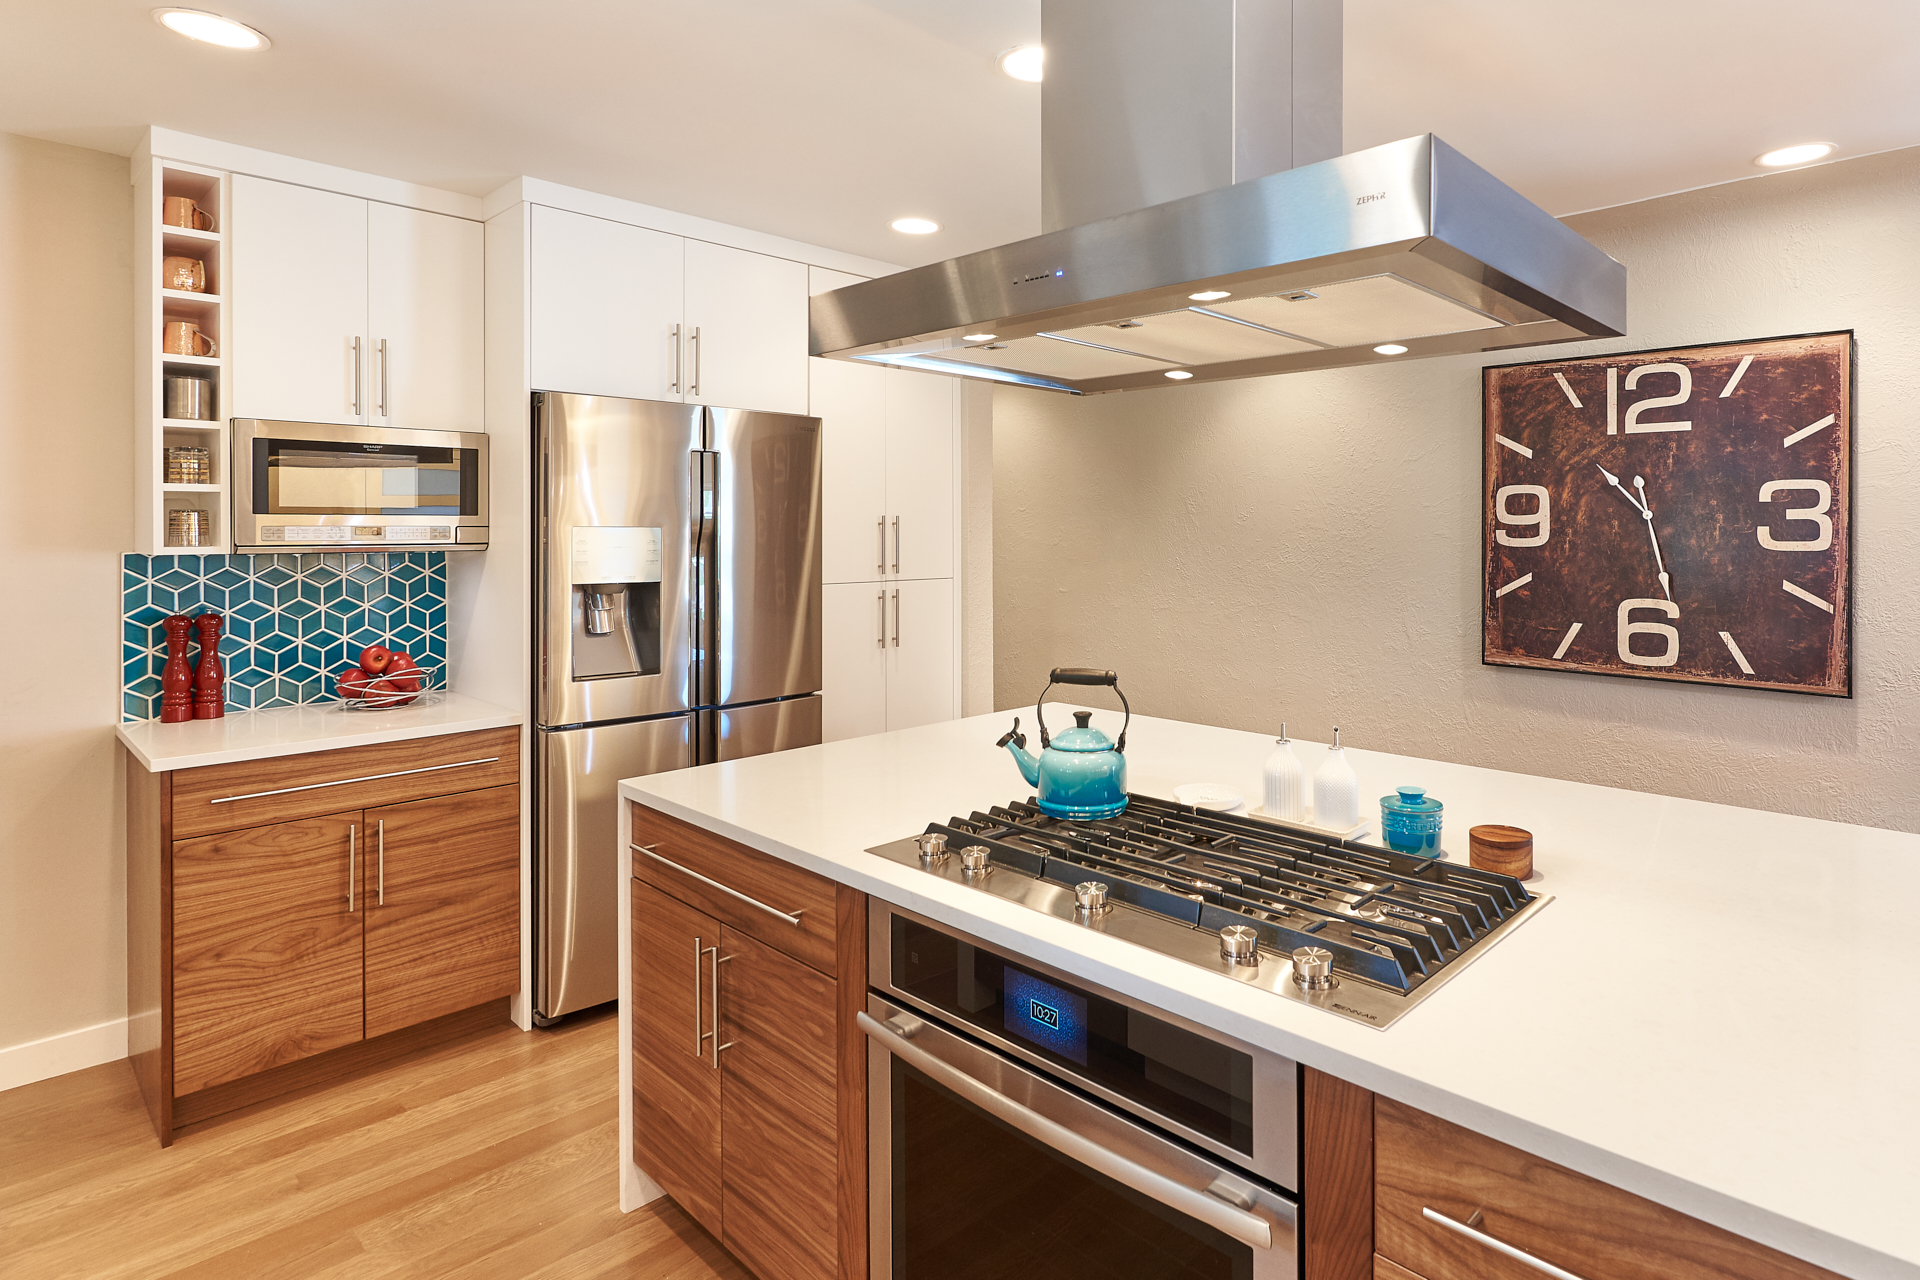 Kitchen entertaining design open shelves and stove oven stainless appliances